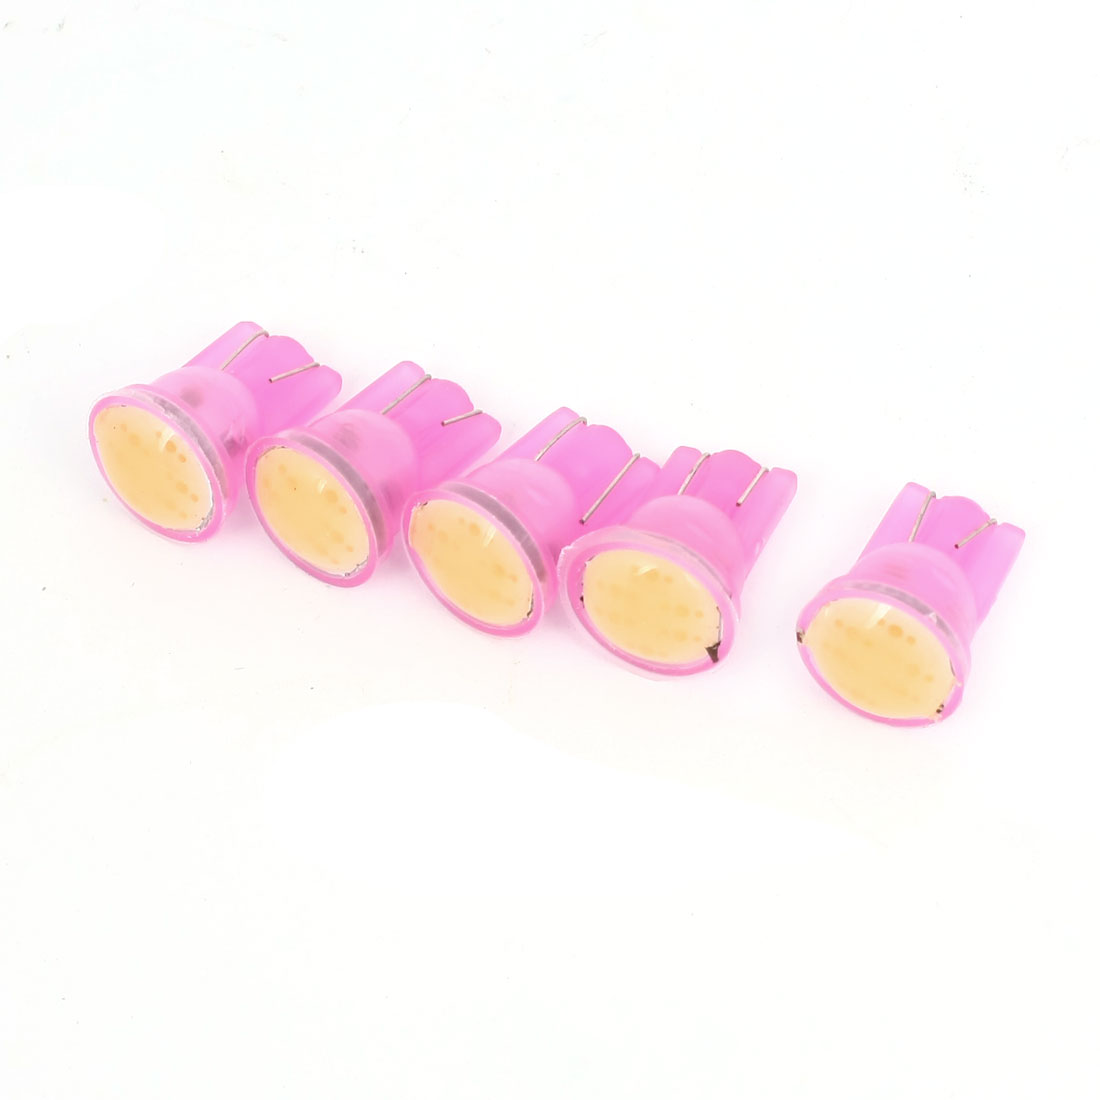 5 Pcs Pink T10 6 COB LED Car Wedge Dash Light Bulbs lamp 12V Internal